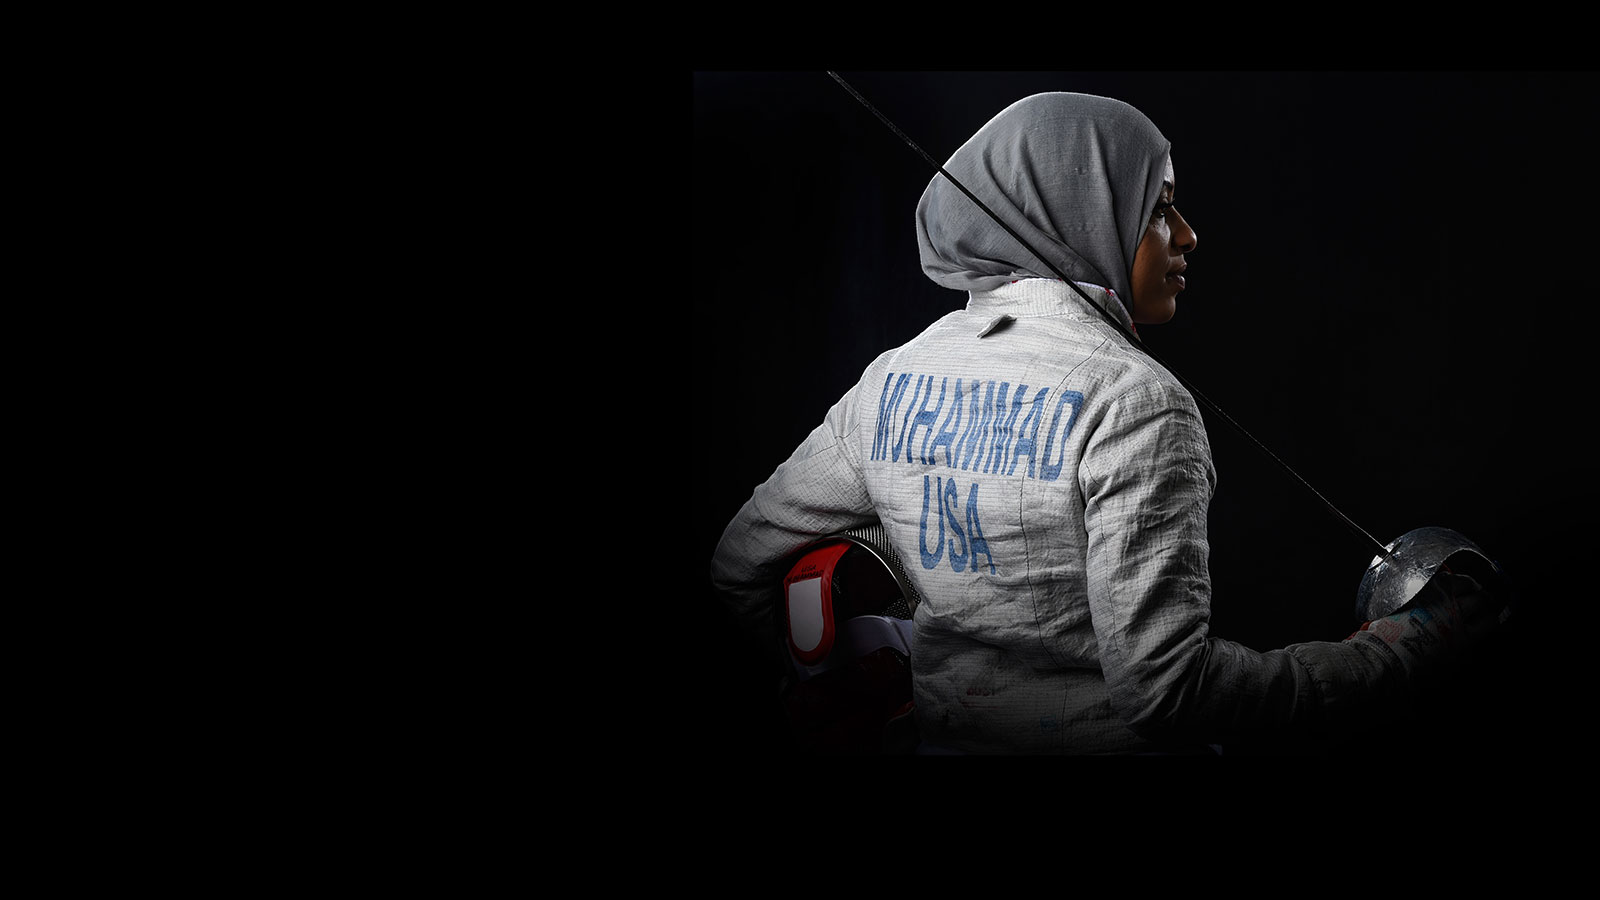 Champion fencer Ibtihaj Muhammad